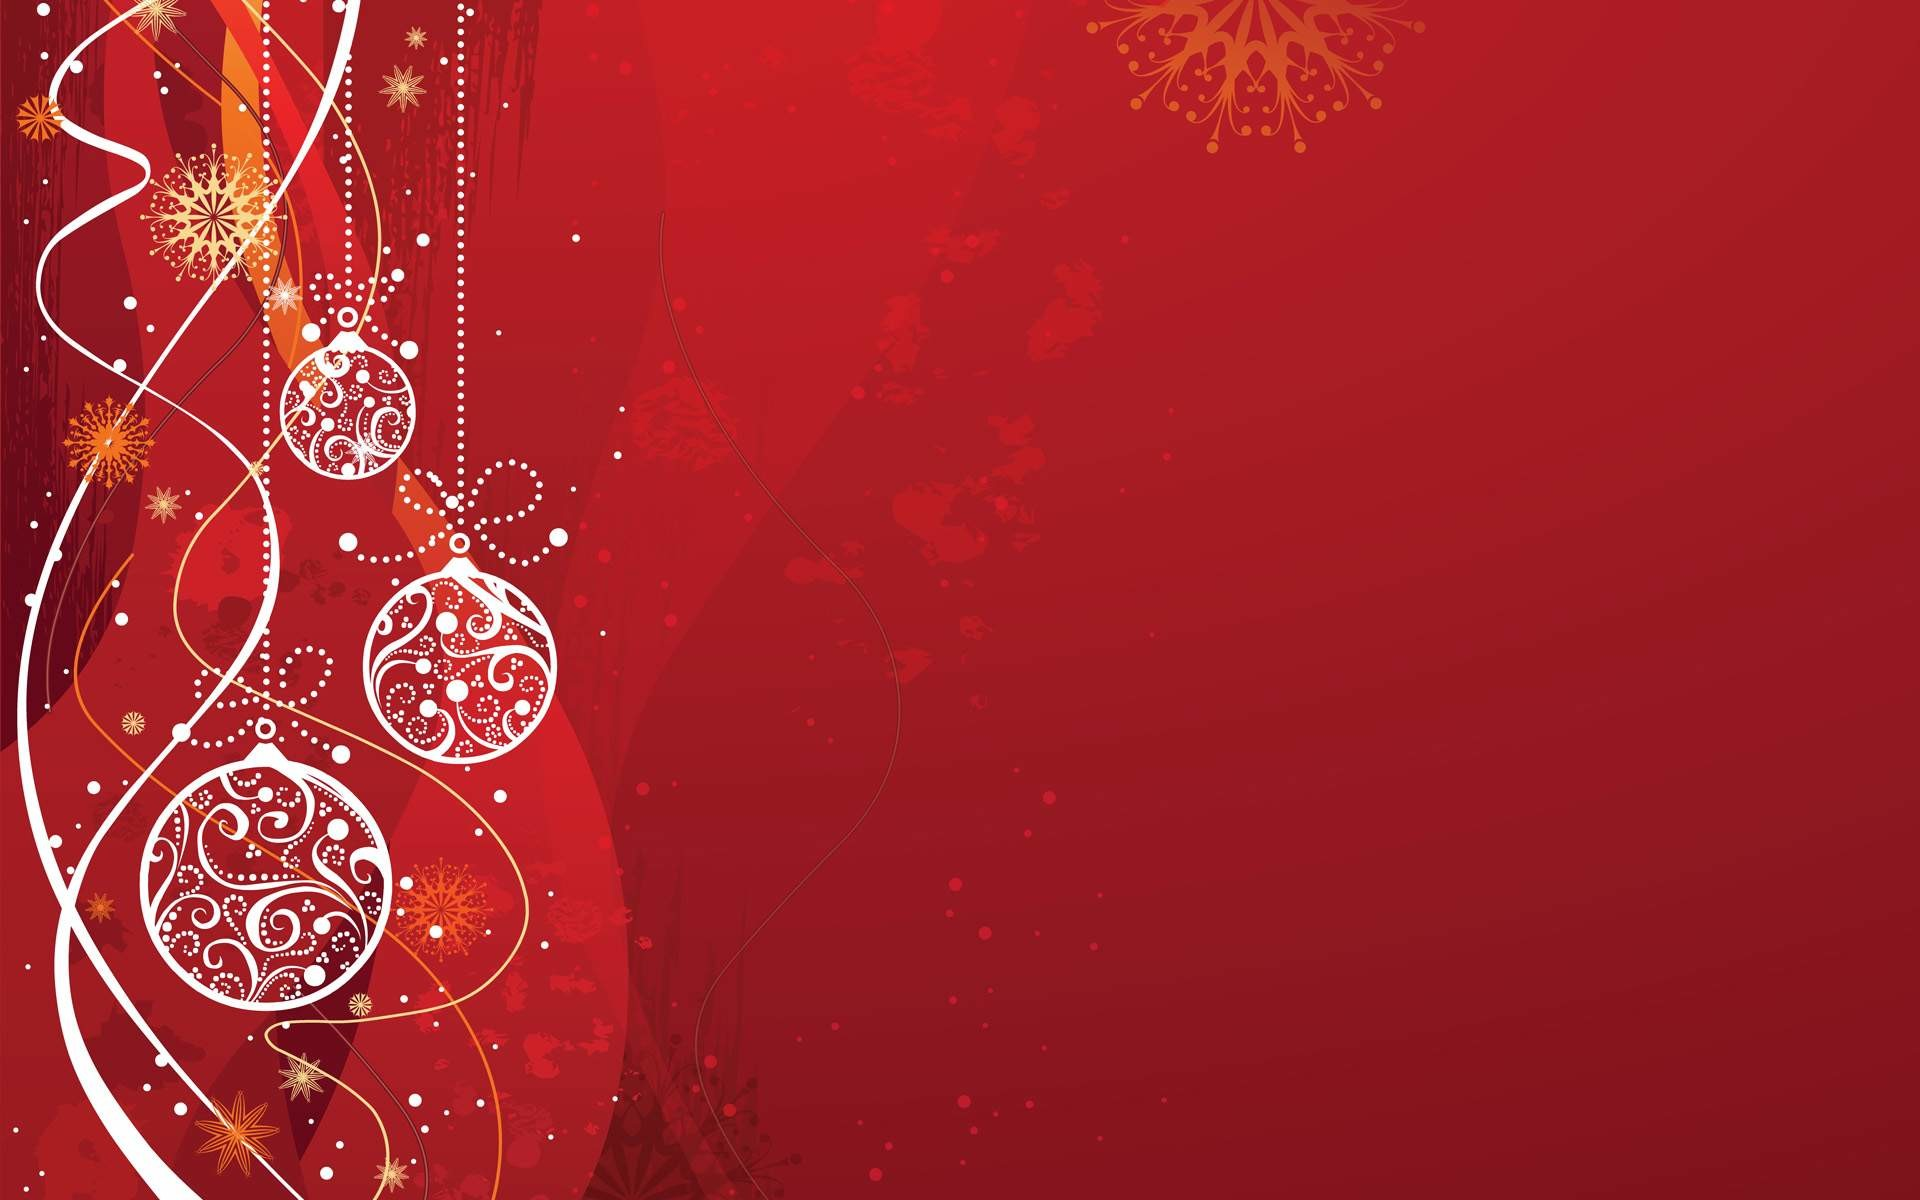 Christmas Background Clipart.Christmas Background Pictures 43 Images